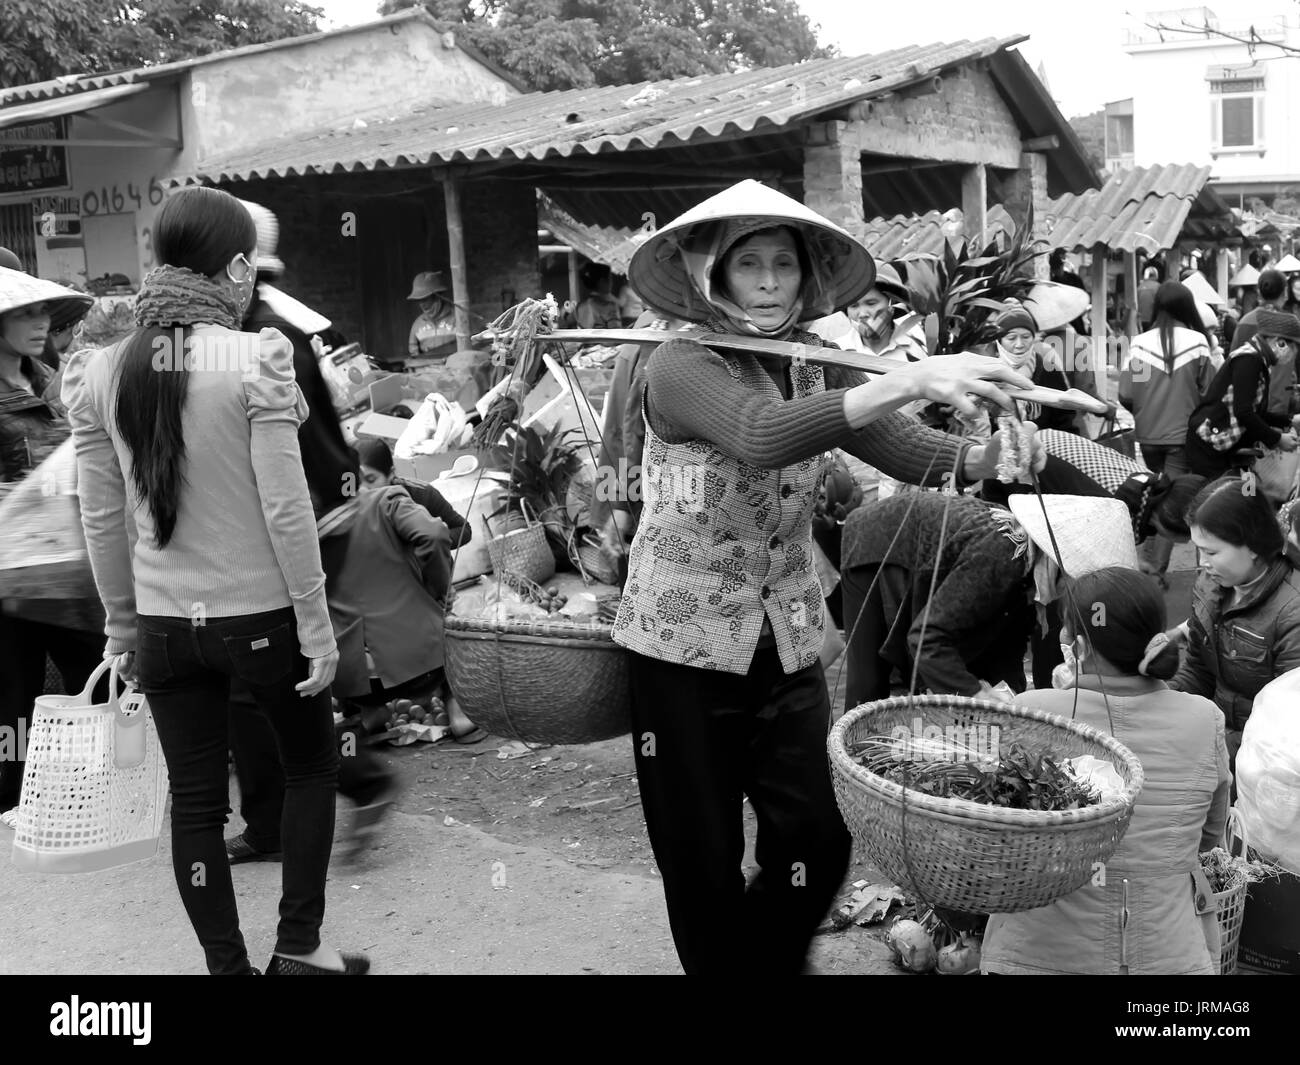 HAI DUONG, VIETNAM, April, 2: Asian woman selling vegetables at the market on April, 2, 2014 in Hai Duong, Vietnam. - Stock Image